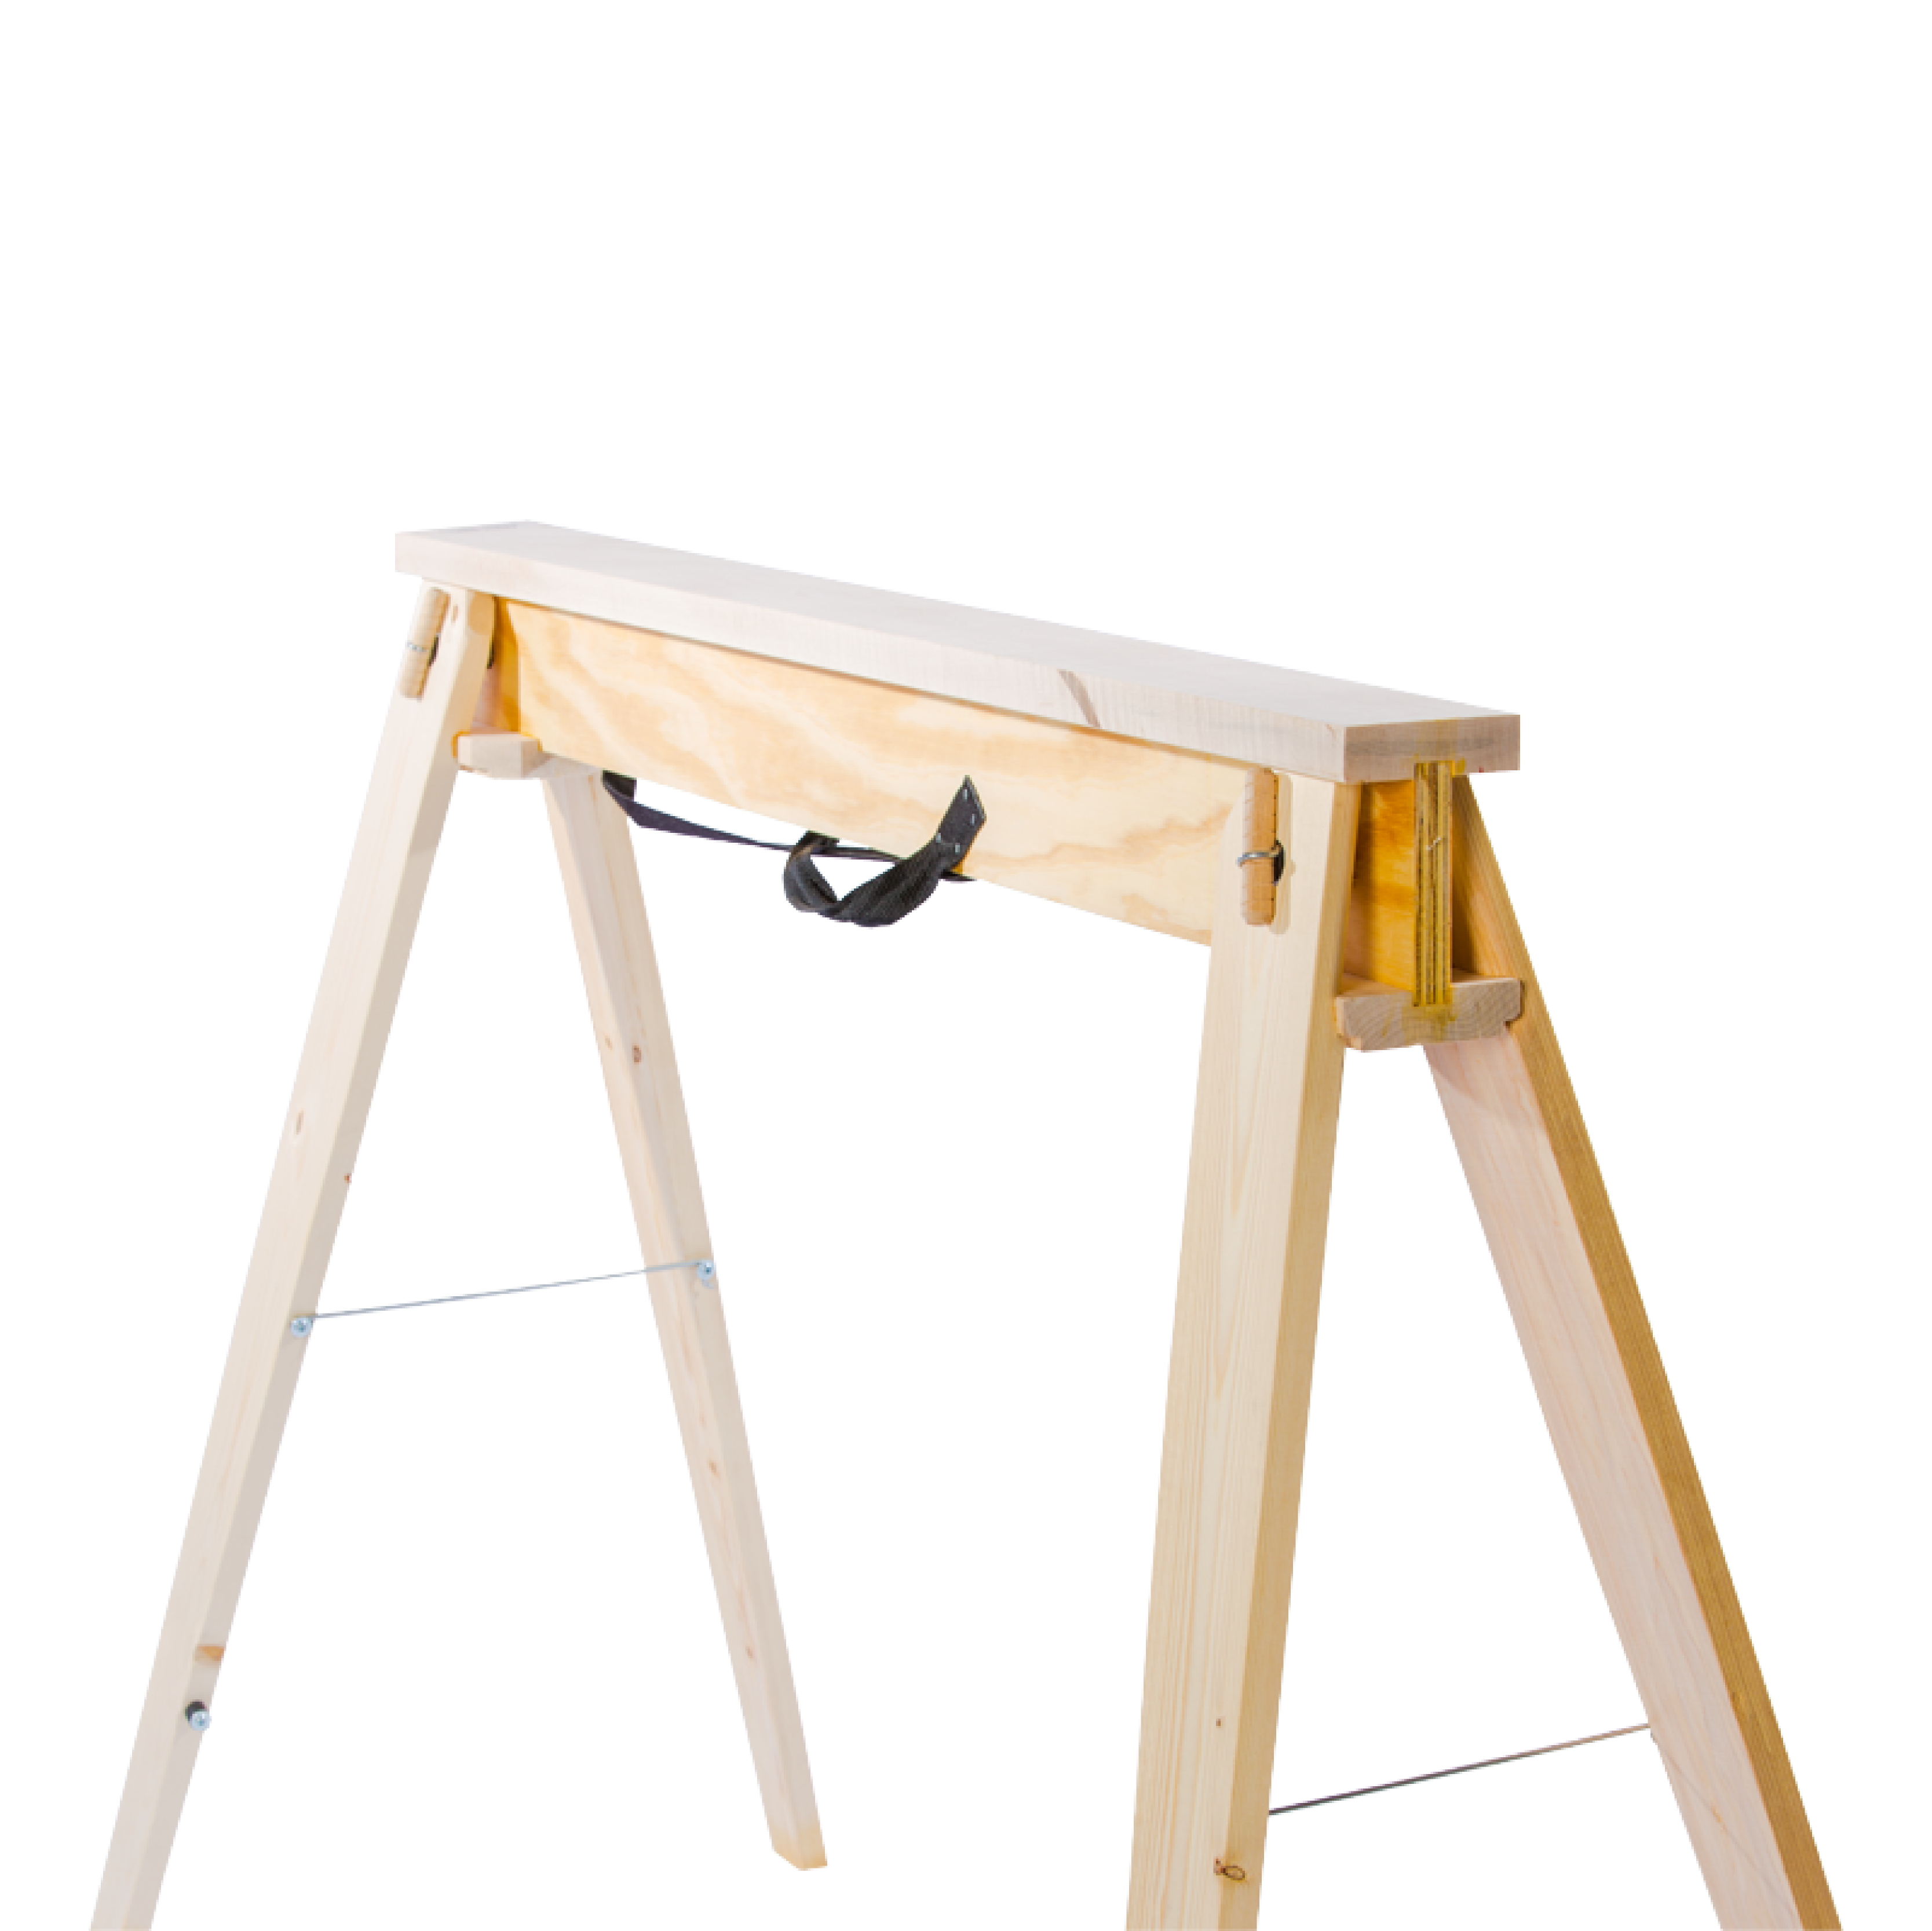 Hide-A-Horse Folding Sawhorse Front